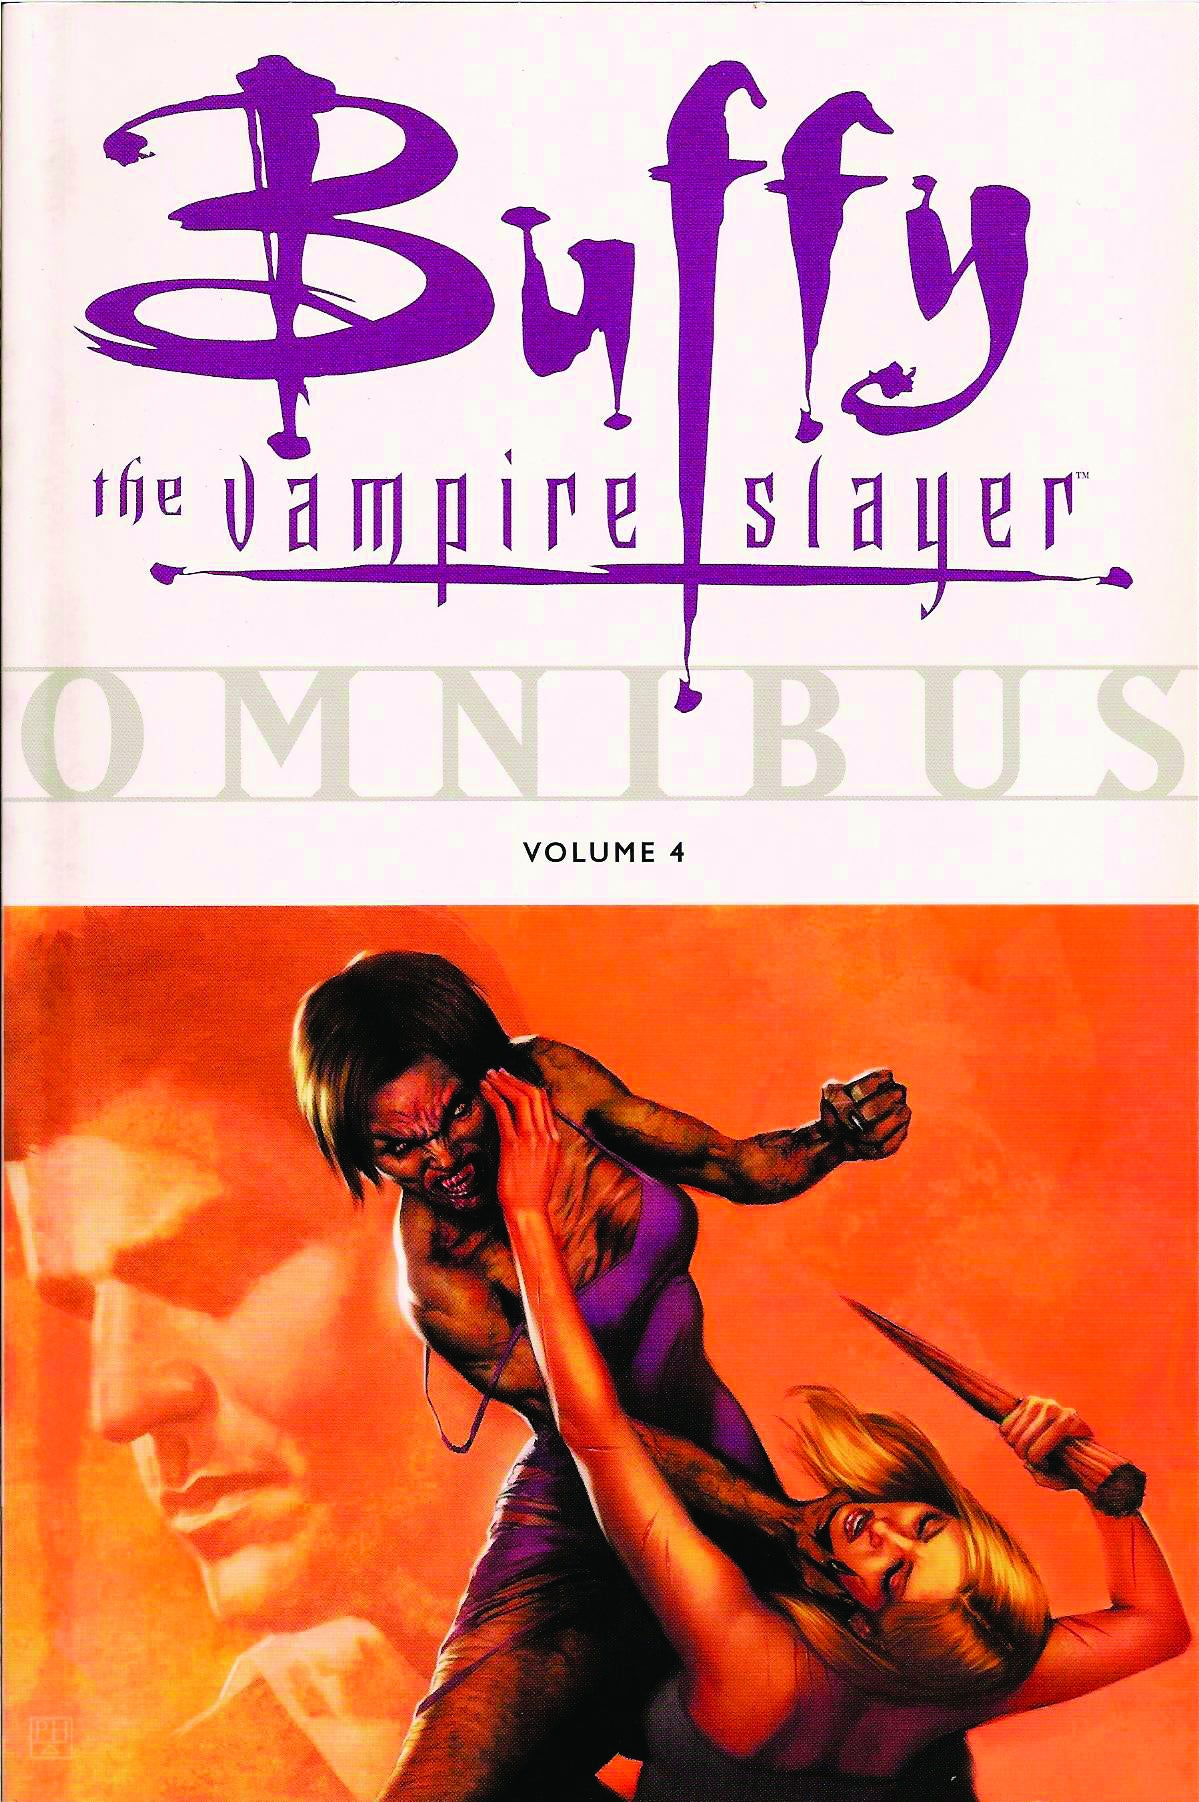 BUFFY THE VAMPIRE SLAYER OMNIBUS TP VOL 04 (C: 0-1-2) | L.A. Mood Comics and Games